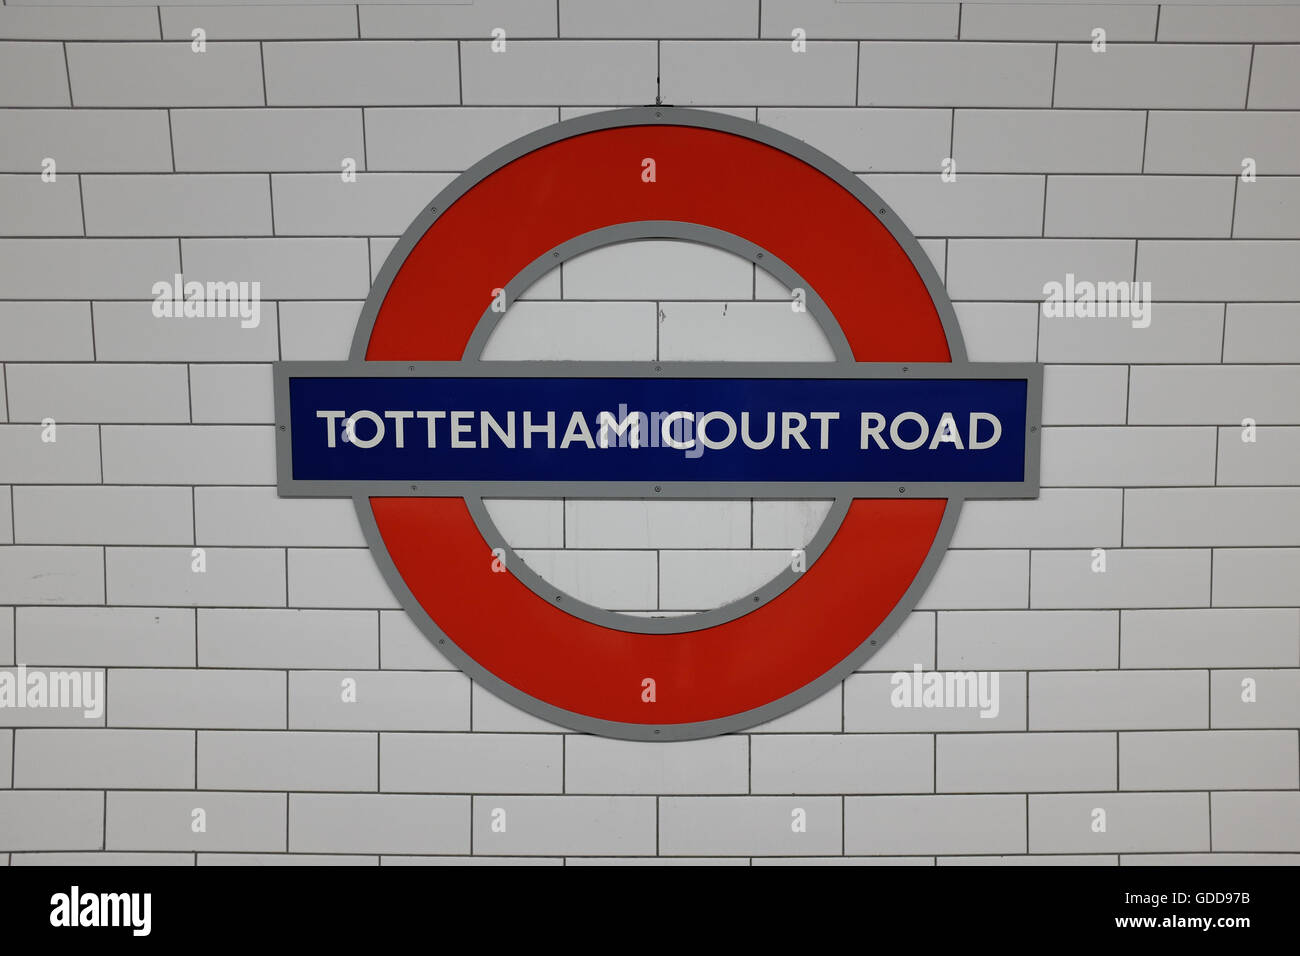 A tube sign at Tottenham Court Road underground station in London, England. - Stock Image